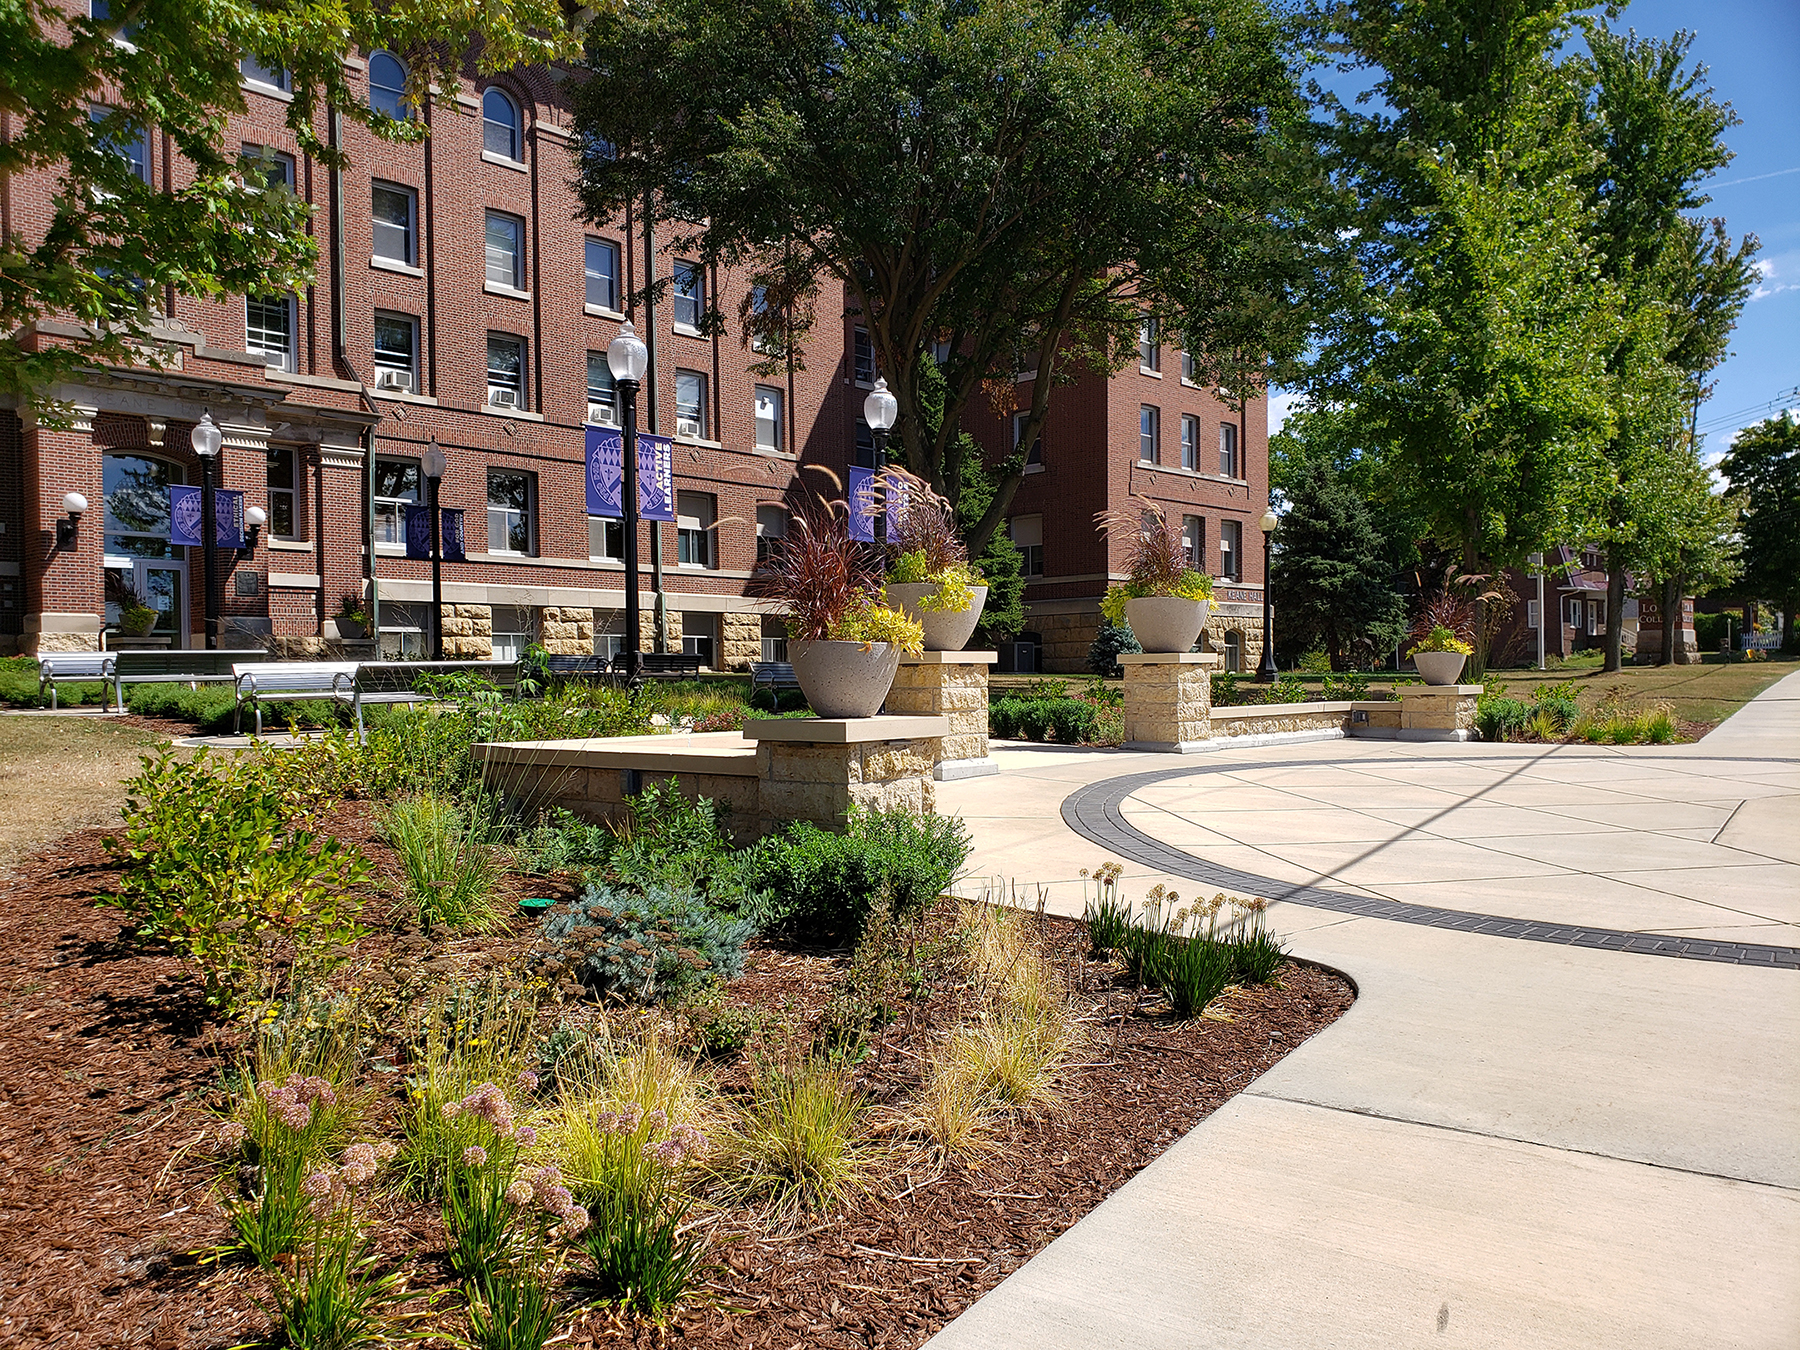 Keane Hall, built in 1913 and an icon of the Loras College campus, embodies a true reflection of the campus – its history and it's special place atop the bluffs of Dubuque – and an exterior courtyard and patio renovation and expansion project now reflects the building's significance and complements the historic architecture and campus identity.